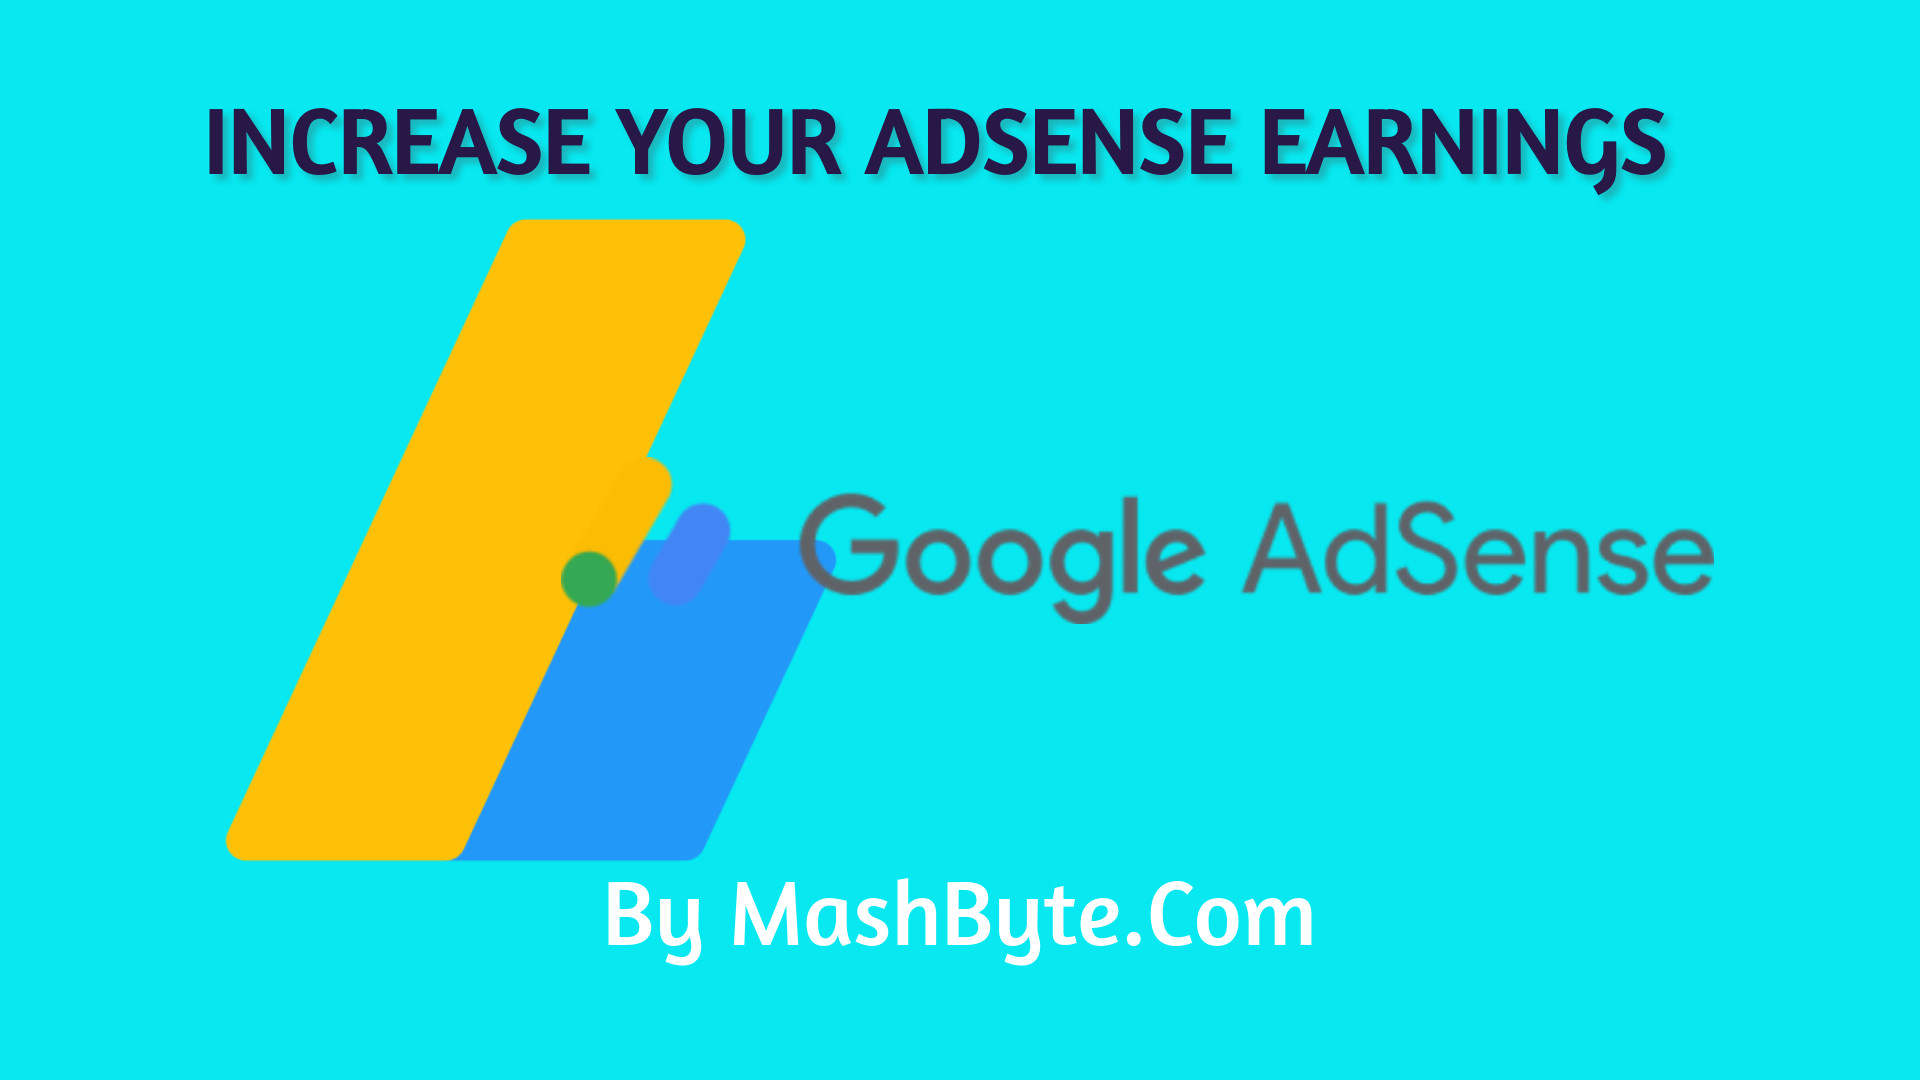 ,Keyword, ,how to get high cpc ads on admob, ,adsense earning trick, ,how to find high cpc keywords, ,how to find high cpc keywords for youtube, ,how to earn more money from adsense, ,how to increase adsense cpc, ,how to increase cpc in admob, ,how to increase cpc adsense youtube, ,Keyword, ,boost adsense earnings, ,adsense earning trick, ,google adsense earning tips, ,adsense search box, ,how to create sponsored searches adsense, ,how to increase adsense earnings on youtube, ,highest cpc adsense keywords, ,adsense cpc in india, ,how to increase cpc adsense youtube, ,adsense cpc rates by country, ,adsense earning trick 2019, ,ctr in adsense, ,google adsense earning websites, ,google adsense earnings per click, ,google adsense earnings calculator, ,how to earn more money from adsense, ,google adsense research, ,Keyword, ,high cpc country 2020, ,high cpc keywords 2020, ,most expensive keywords 2020, ,admob high cpc ads list, ,high cpc keywords youtube, ,high cpc niche in india, ,high cpc in india, ,1000 cpc keywords, ,Keyword, ,high cpc country, ,most expensive google keywords 2020, ,how does google determine cpc, ,ad cpc, ,most expensive keywords in canada, ,high value keywords for domain, ,keyword cpc checker free, ,spyfu for amazon, ,top 100 cpc keywords, ,spyfu com leads, ,keyword planner spyfu, ,why is my cpc so high on facebook, ,average cost per click by industry, ,a cost per view bid focuses on, ,cost per click formula, ,serp is, ,average cpc for google ads in india, ,expensive google keywords, ,high cpc hindi keywords, ,best insurance keywords list, ,spyfu canada, ,cpc price checker, ,what is a good cpc for facebook ads, ,ctr advertising, ,what is cpm in digital marketing, ,google organic, ,examples) of cpc advertising platforms are, ,is high cpc good or bad, ,high cost per click google ads, ,google ads cost increase, ,why is my cost per conversion so high, ,how to lower cpc google ads, ,what is cpc in blogging, ,calculating cost per click, ,cpm in digital ma